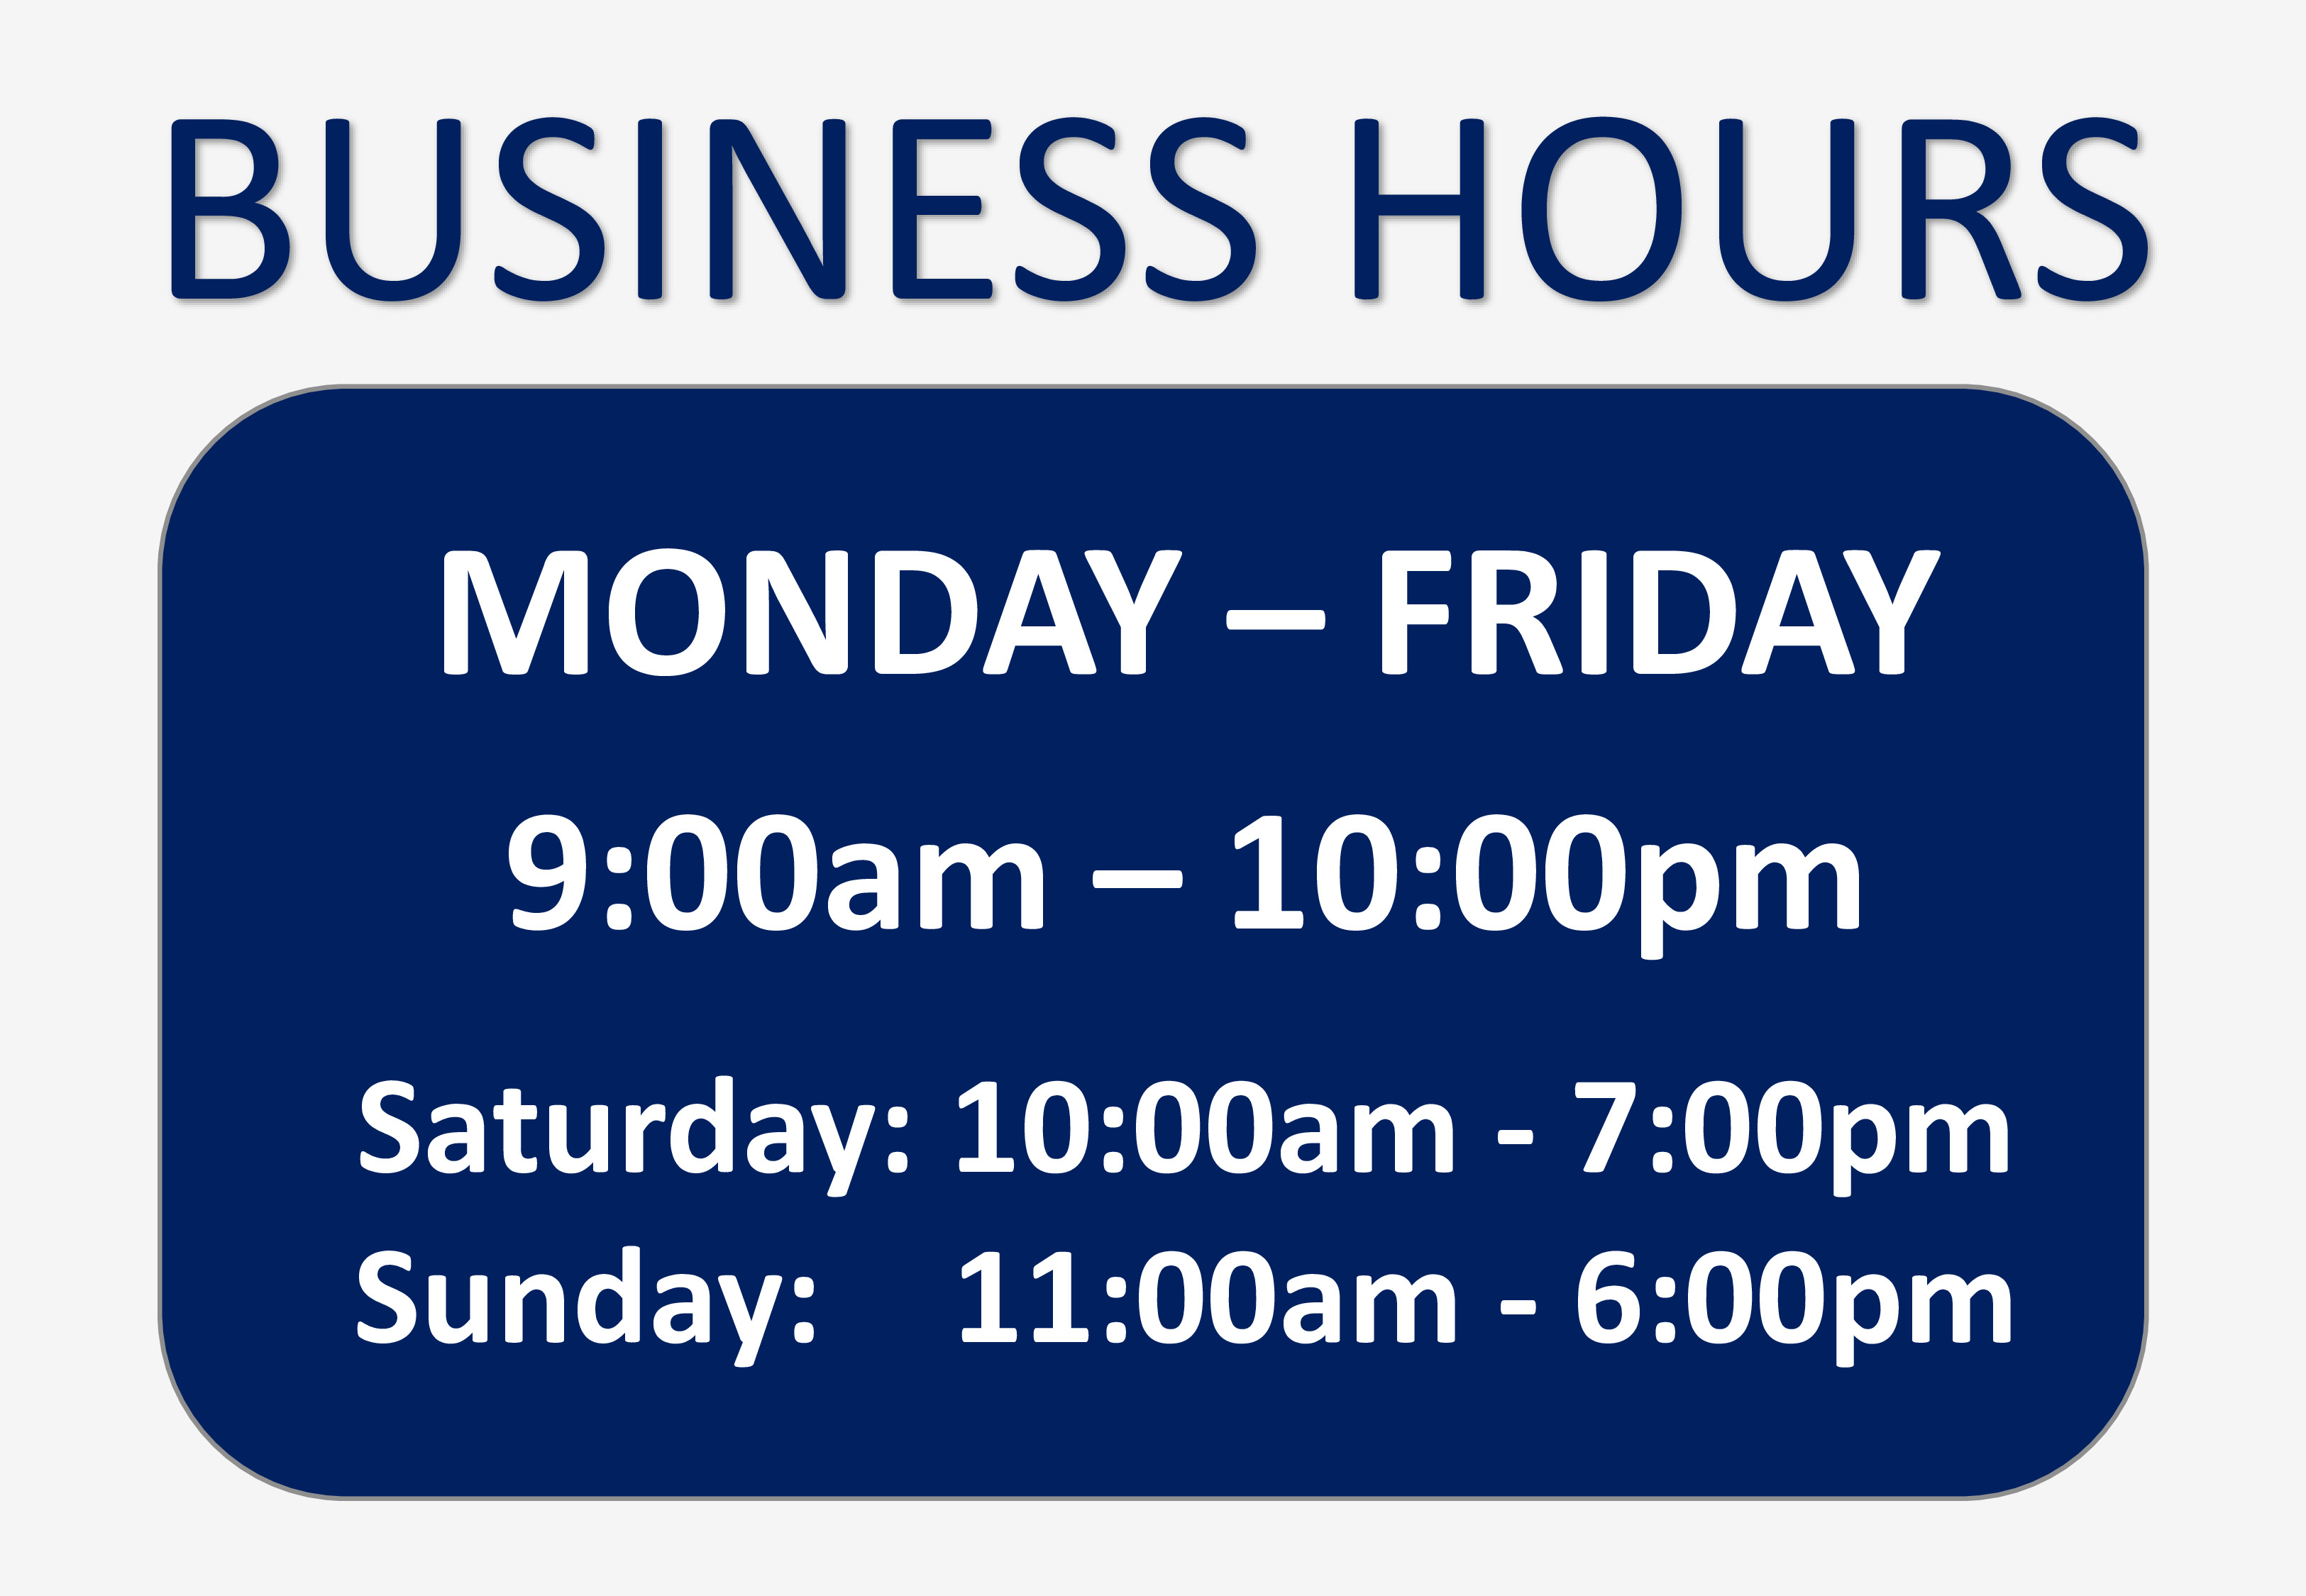 Business Hours Template Microsoft Word Business Hours Sign